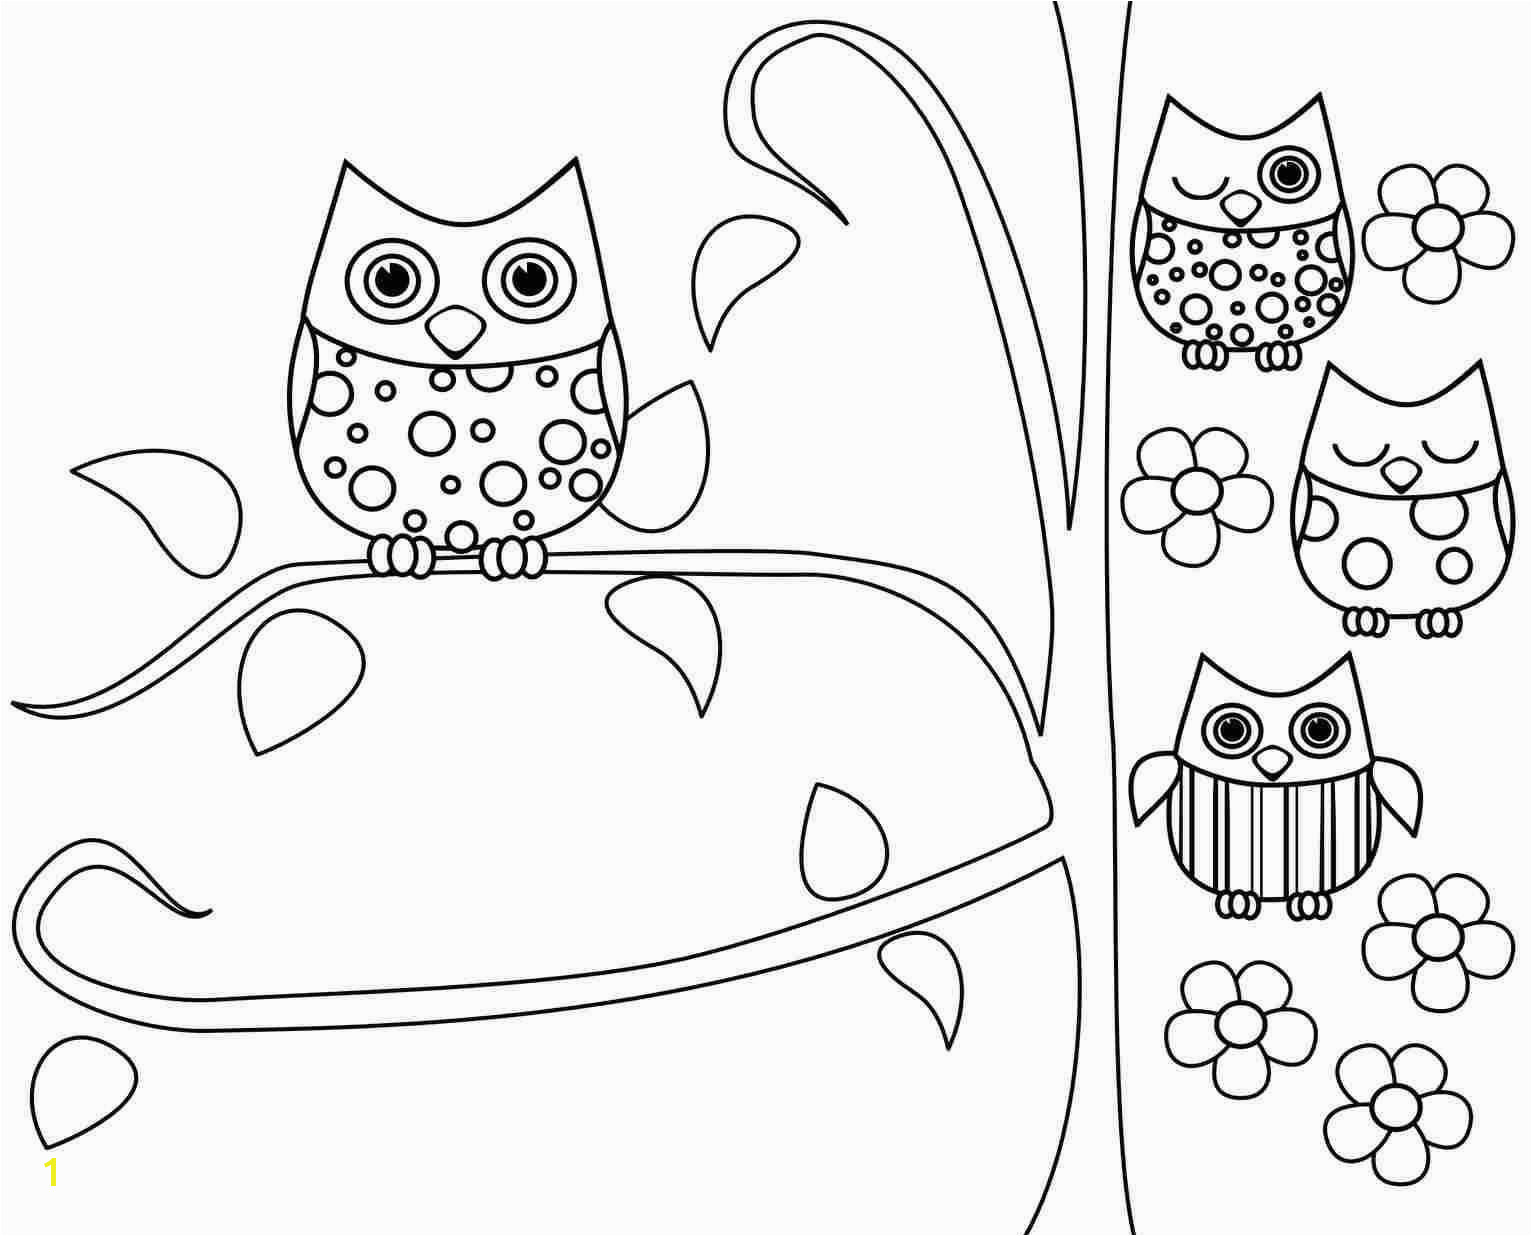 Owl Printable Coloring Pages Printable Colouring Pages Awesome Printable Coloring Pages Owls